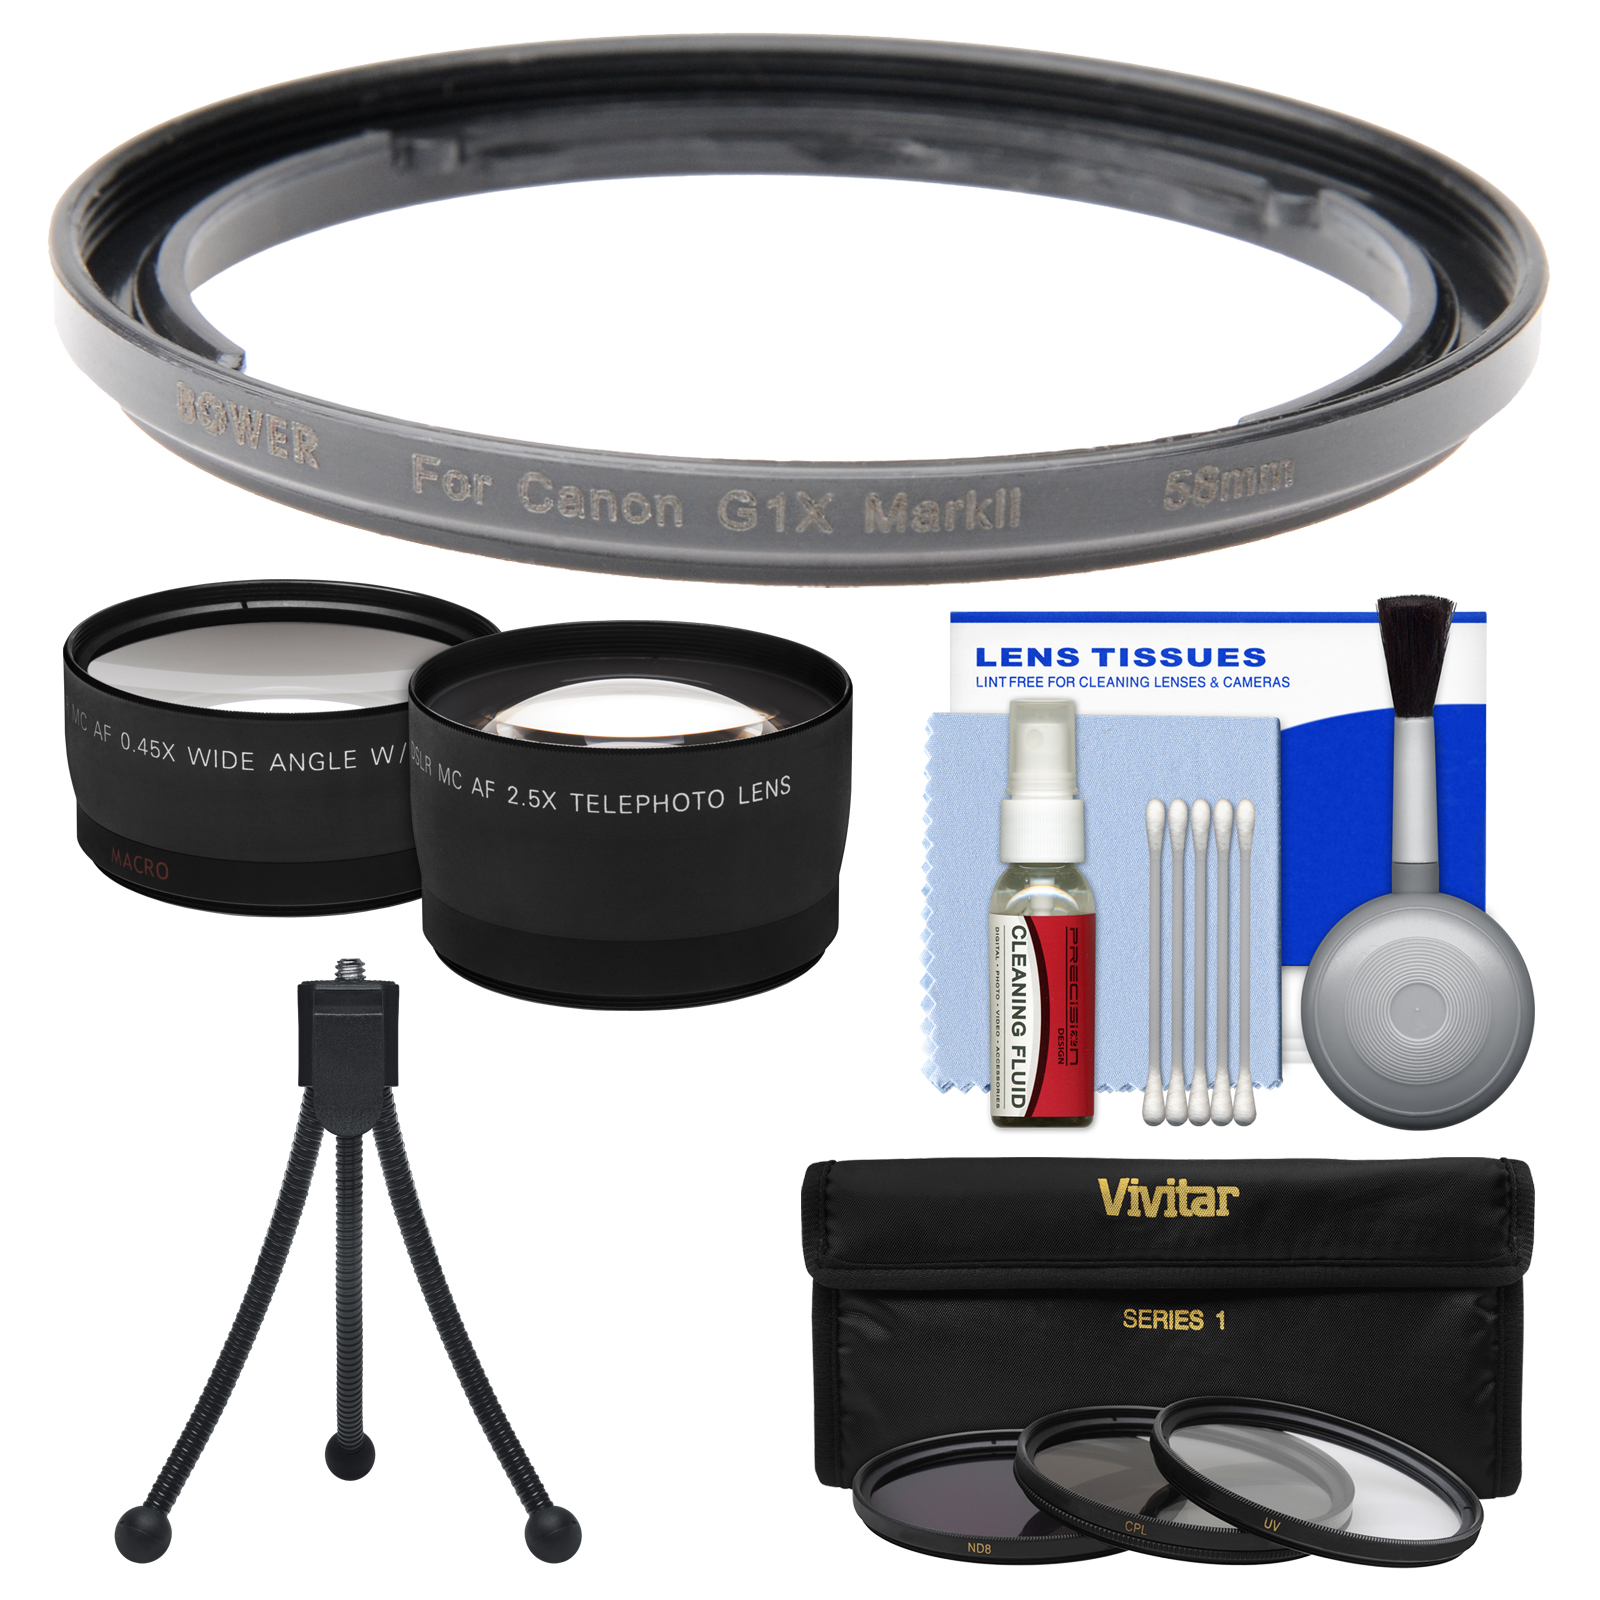 Bower FA-DC58E Conversion Adapter Ring for Canon PowerShot G1 X Mark II Camera (58mm) with Flex Tripod   3 UV/CPL/ND8 Filters   Tele/Wide Lenses Kit